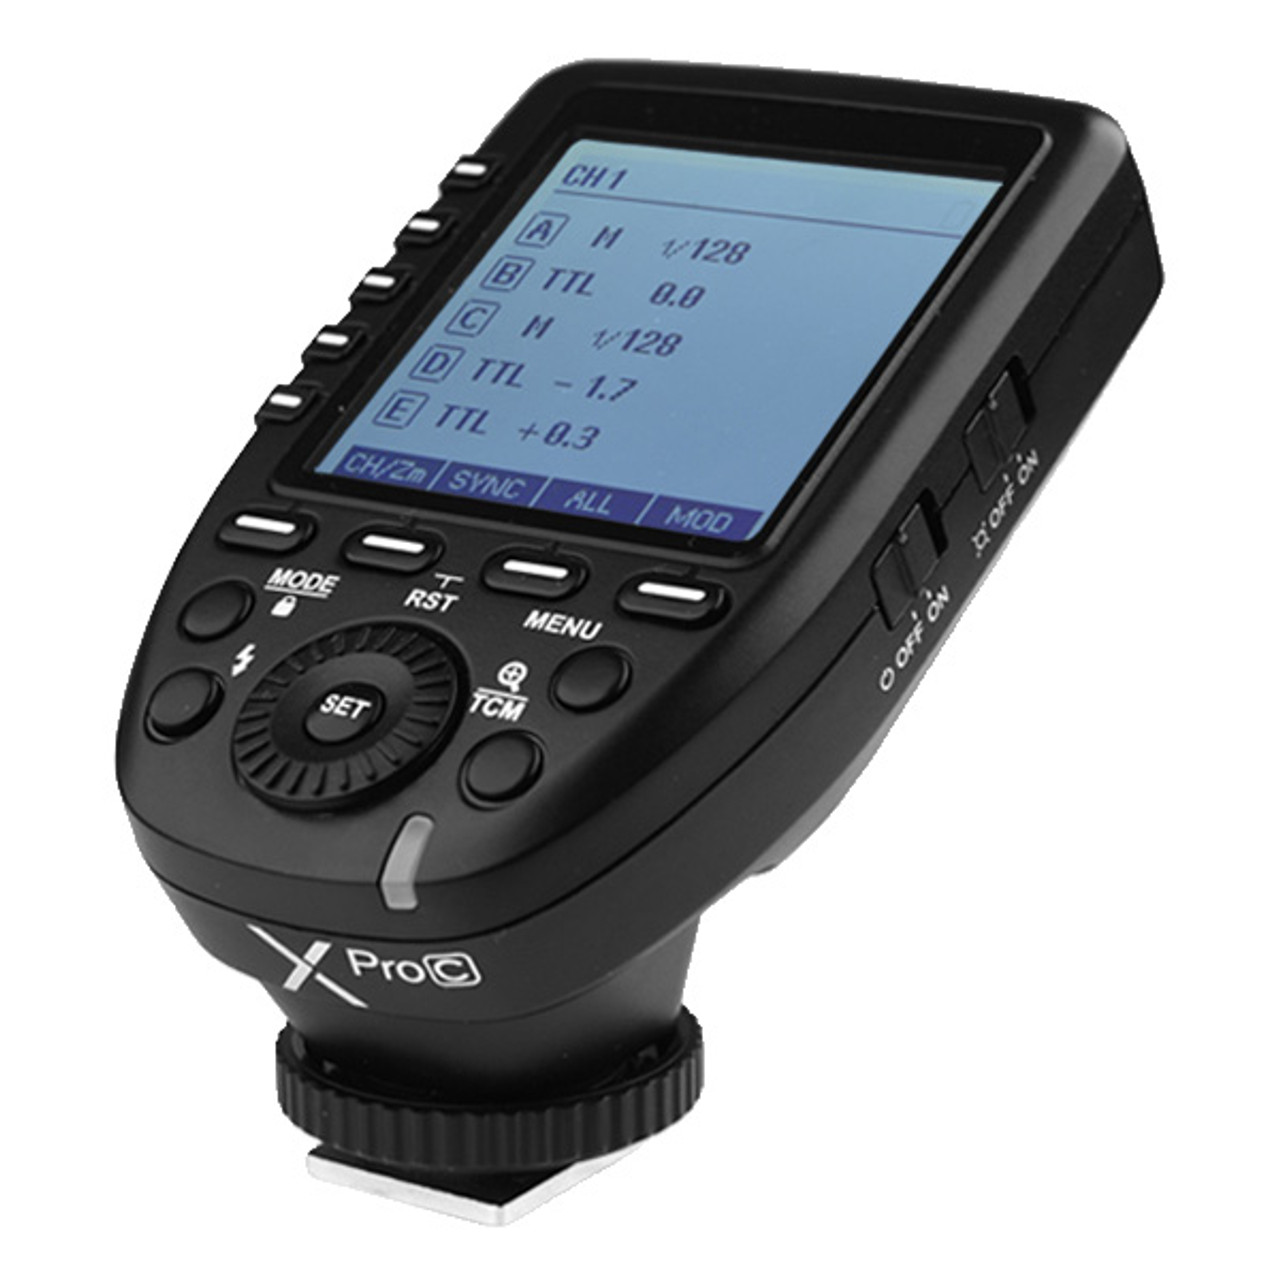 Godox Xpro 2.4G Transmitter for Canon